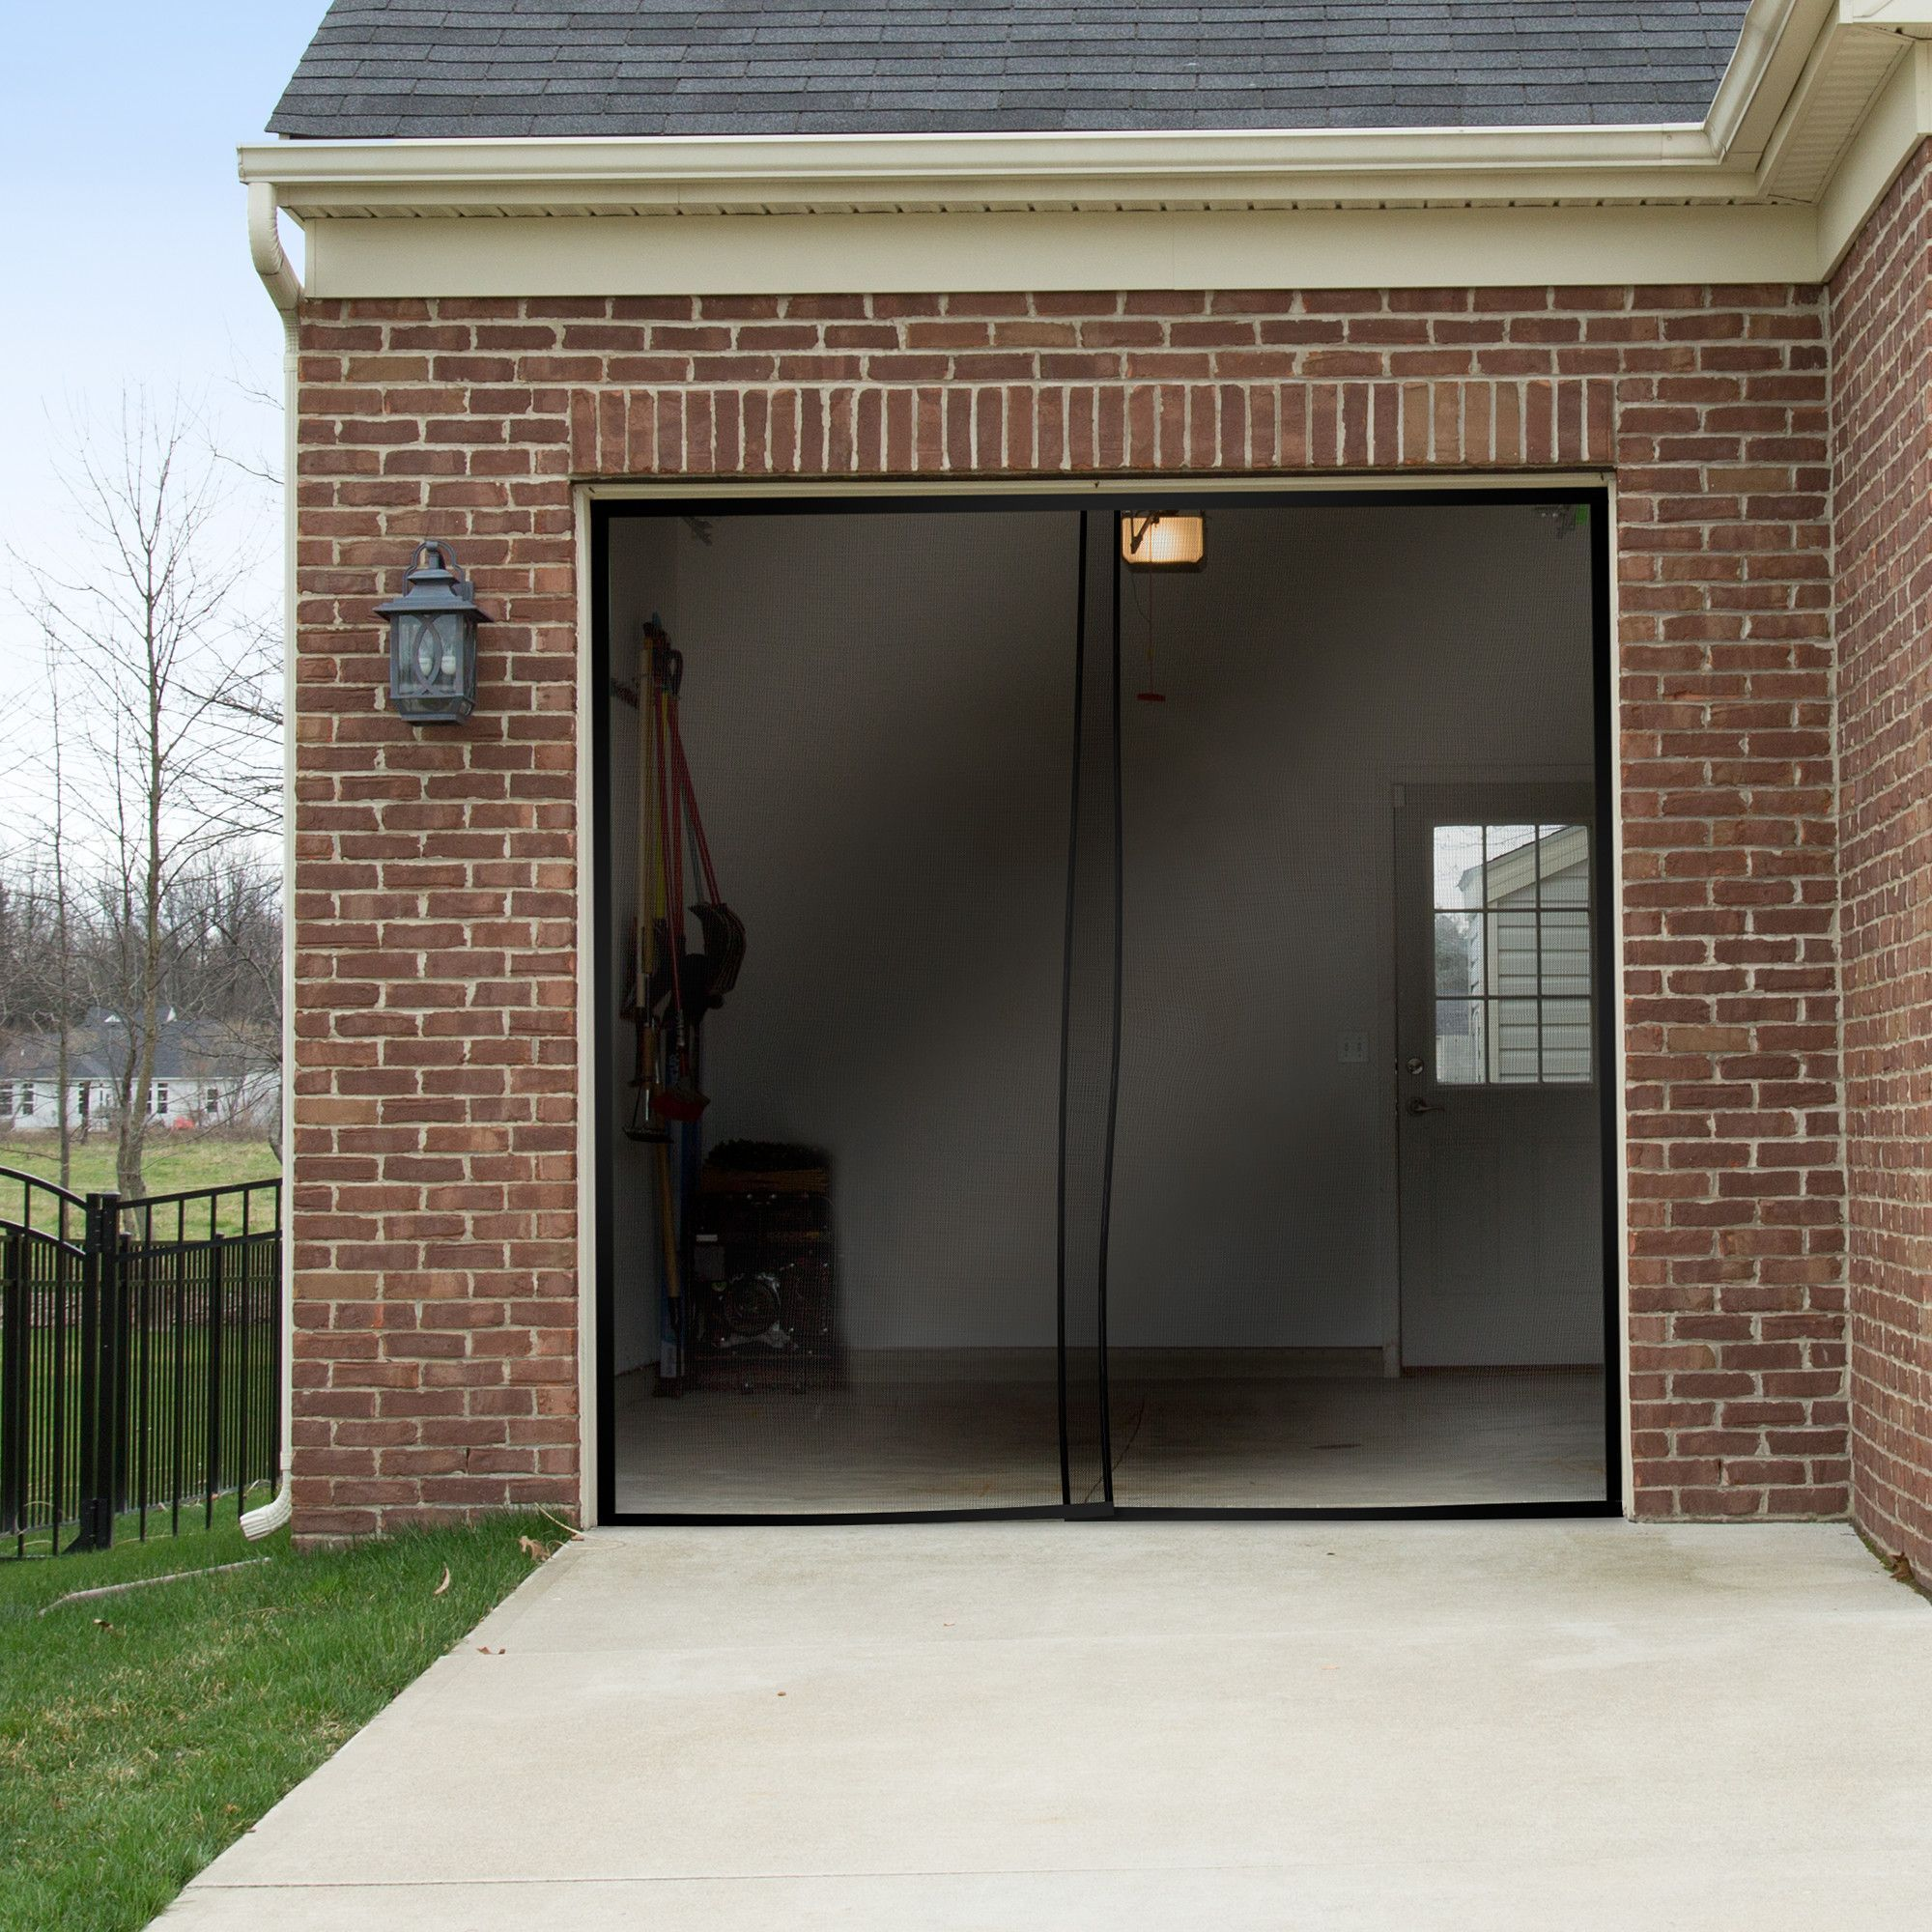 2 Piece One Car Garage Screen Door Set Garage Screen Door Garage Door Styles Garage Door Design